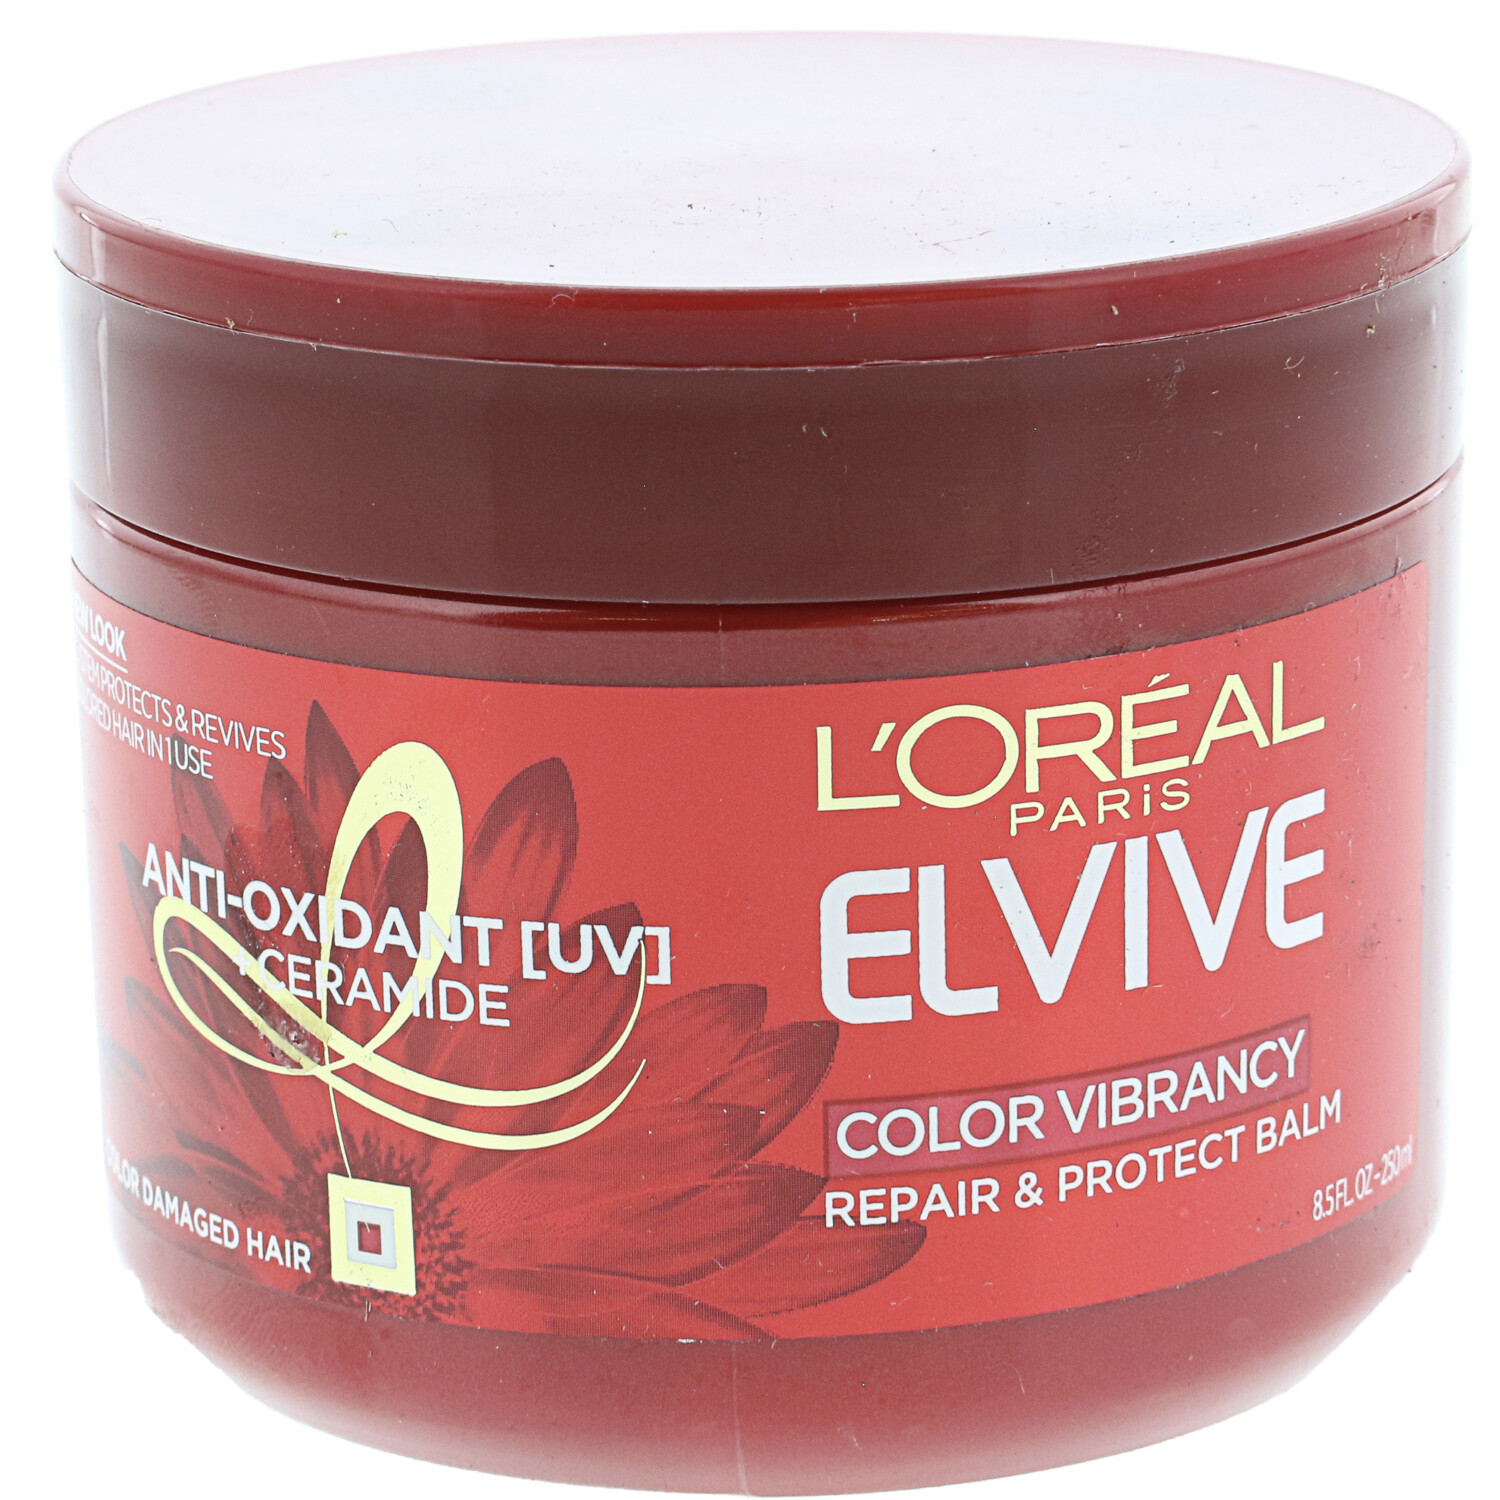 L'oreal Elvive Color Vibrancy Repair And Protect Balm Hair Treatment 30S501F